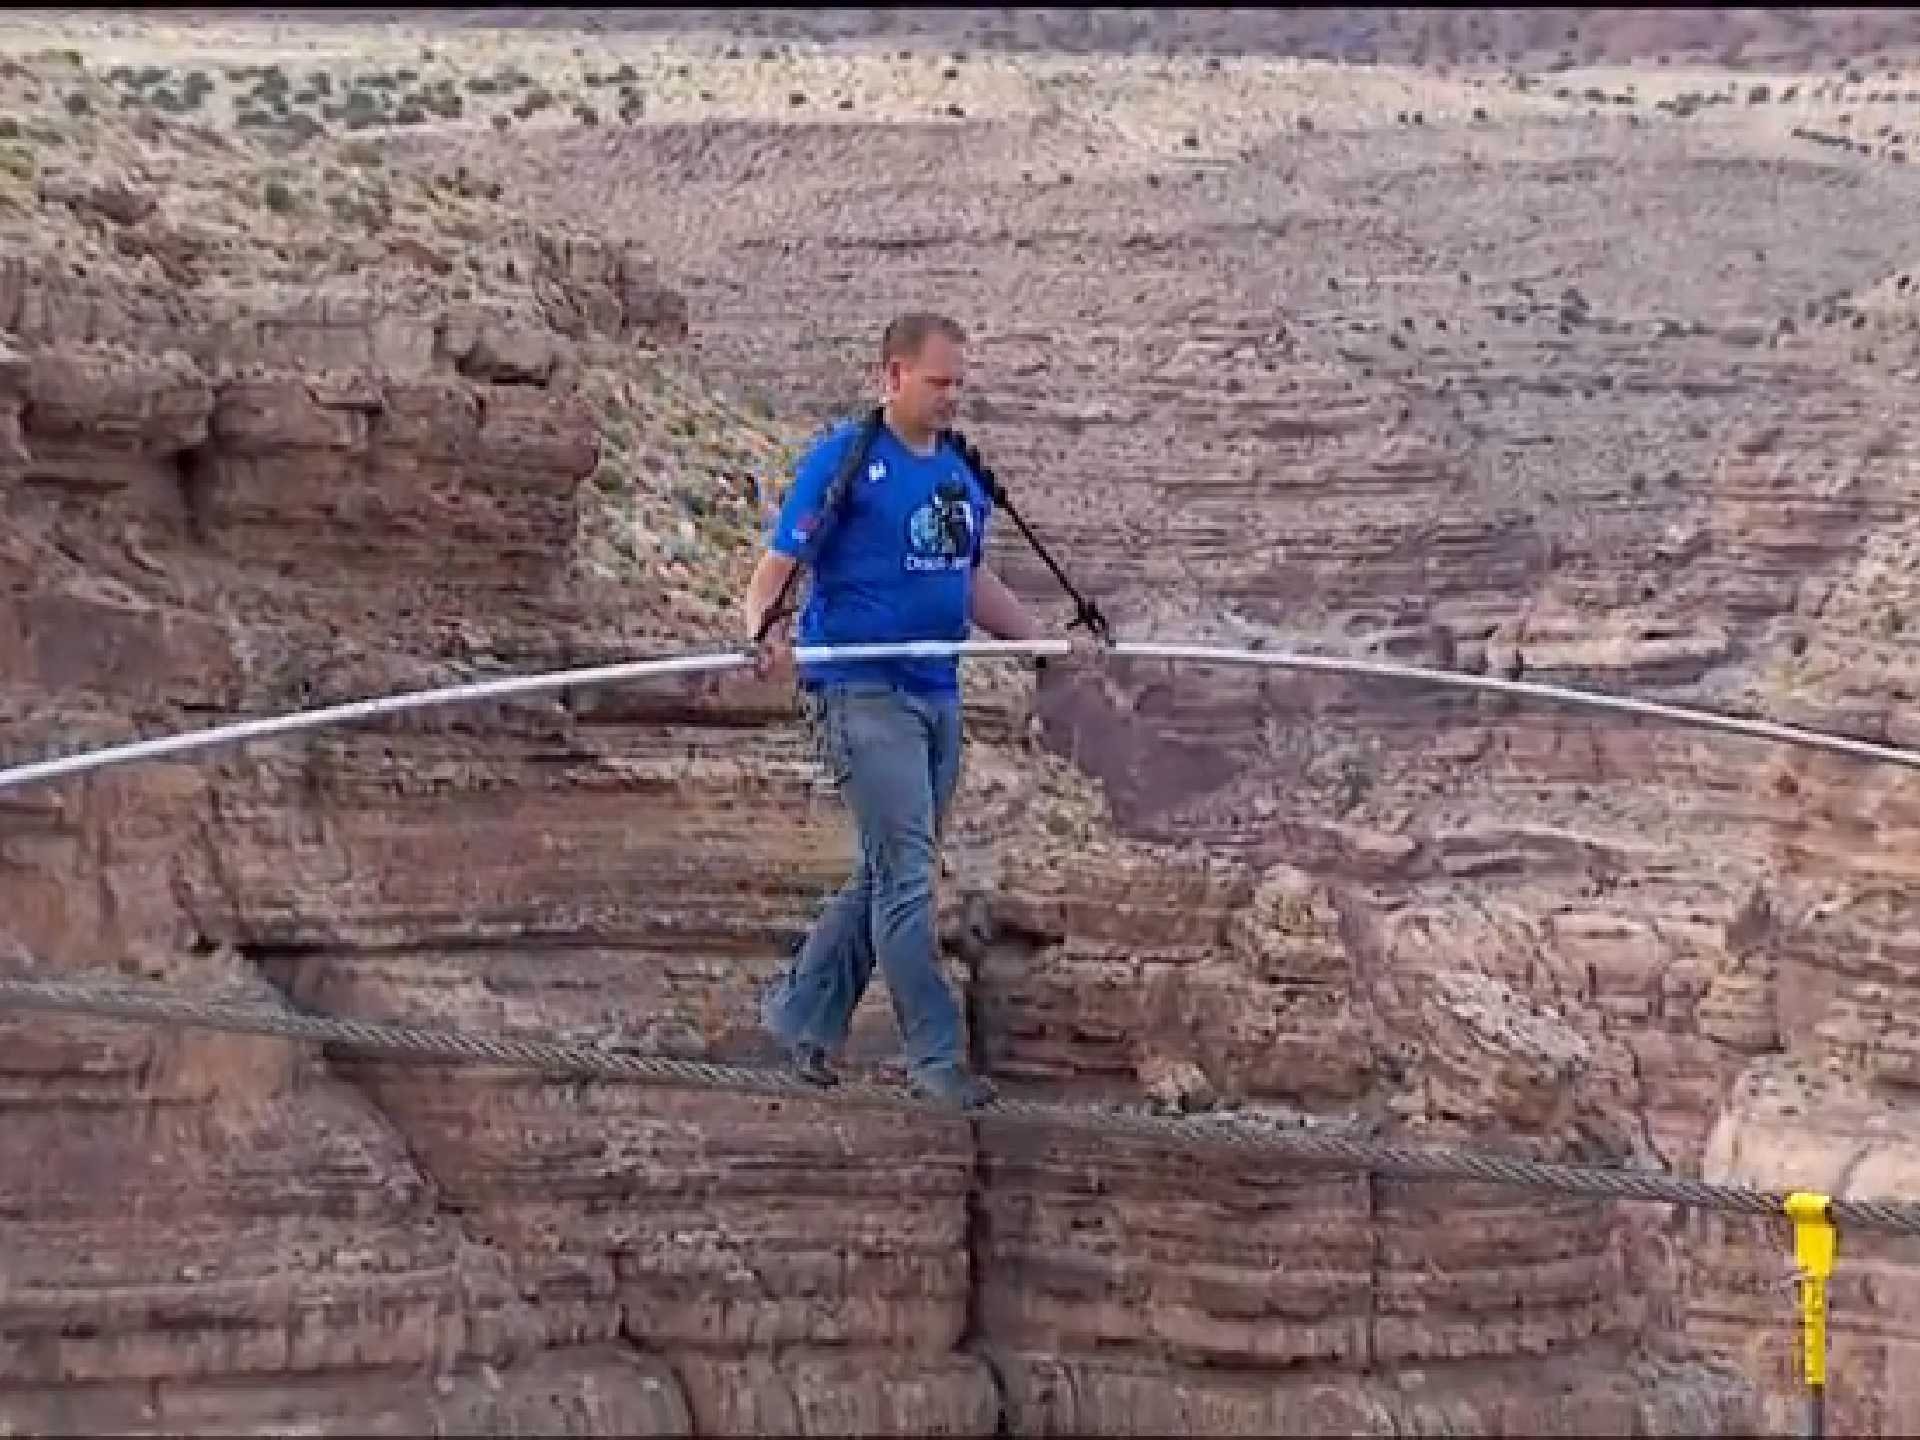 The world record for tight rope walking is held by nik wallenda